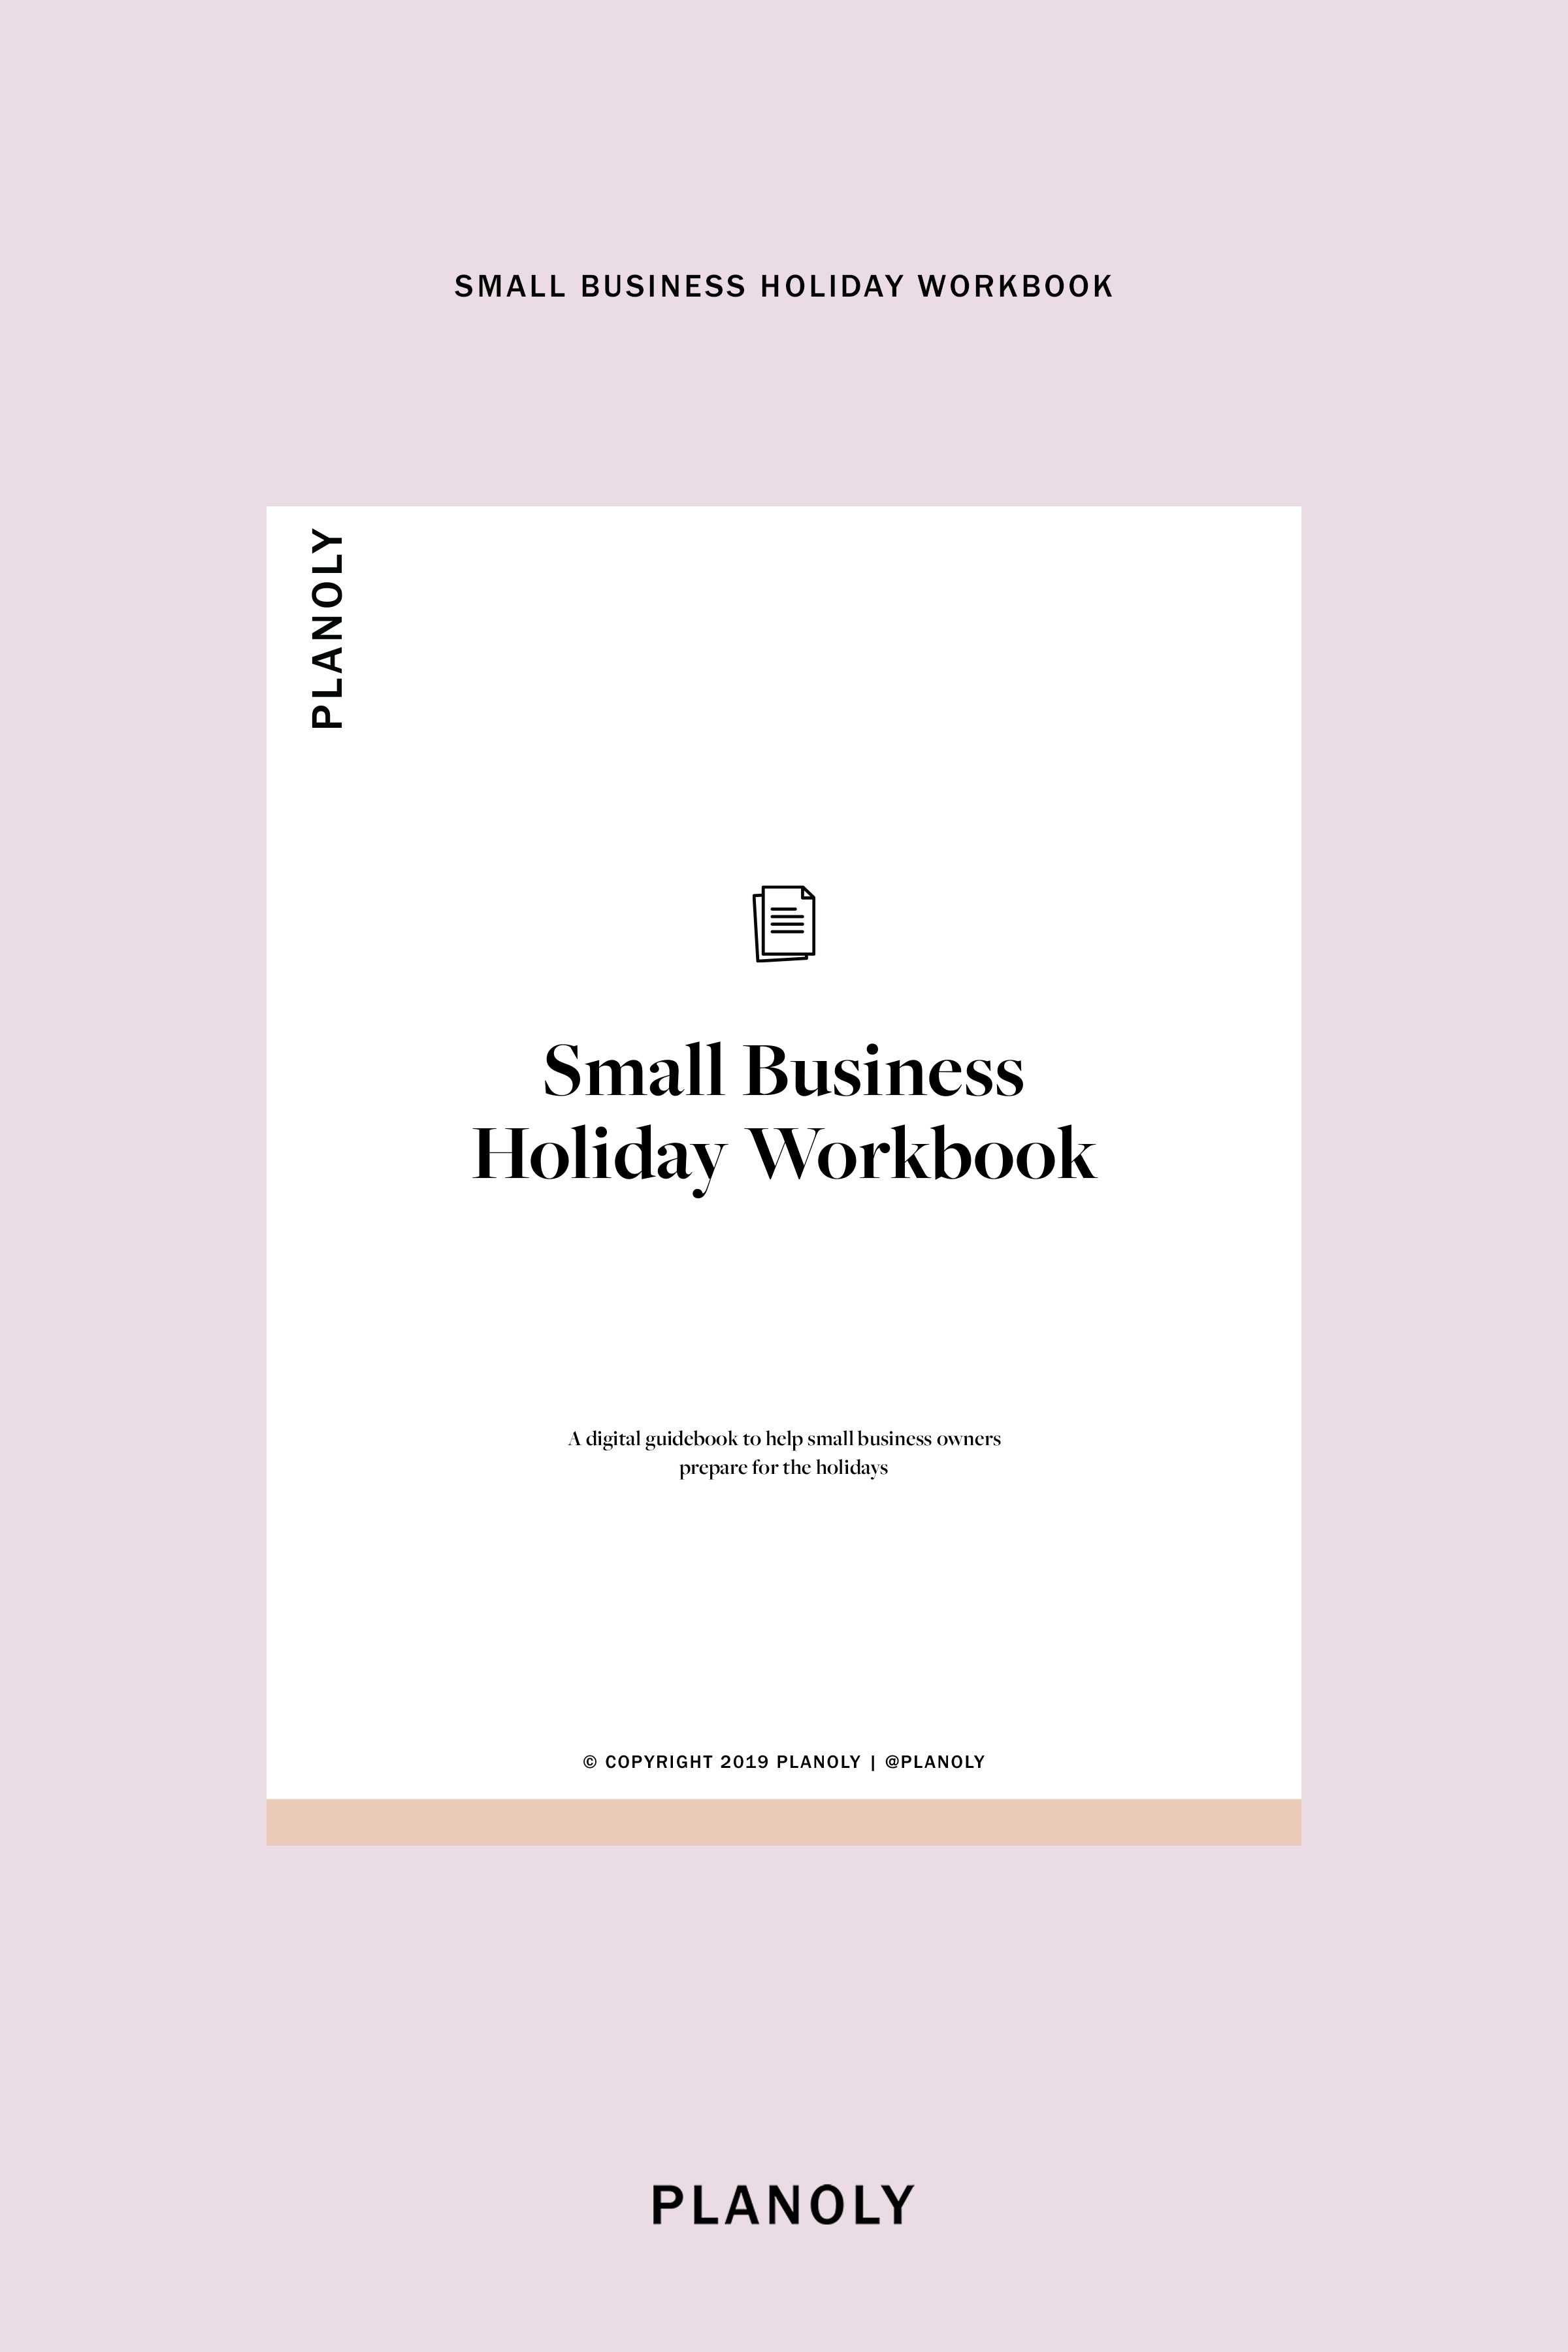 How to Set Your Business Up for Success This Holiday Season